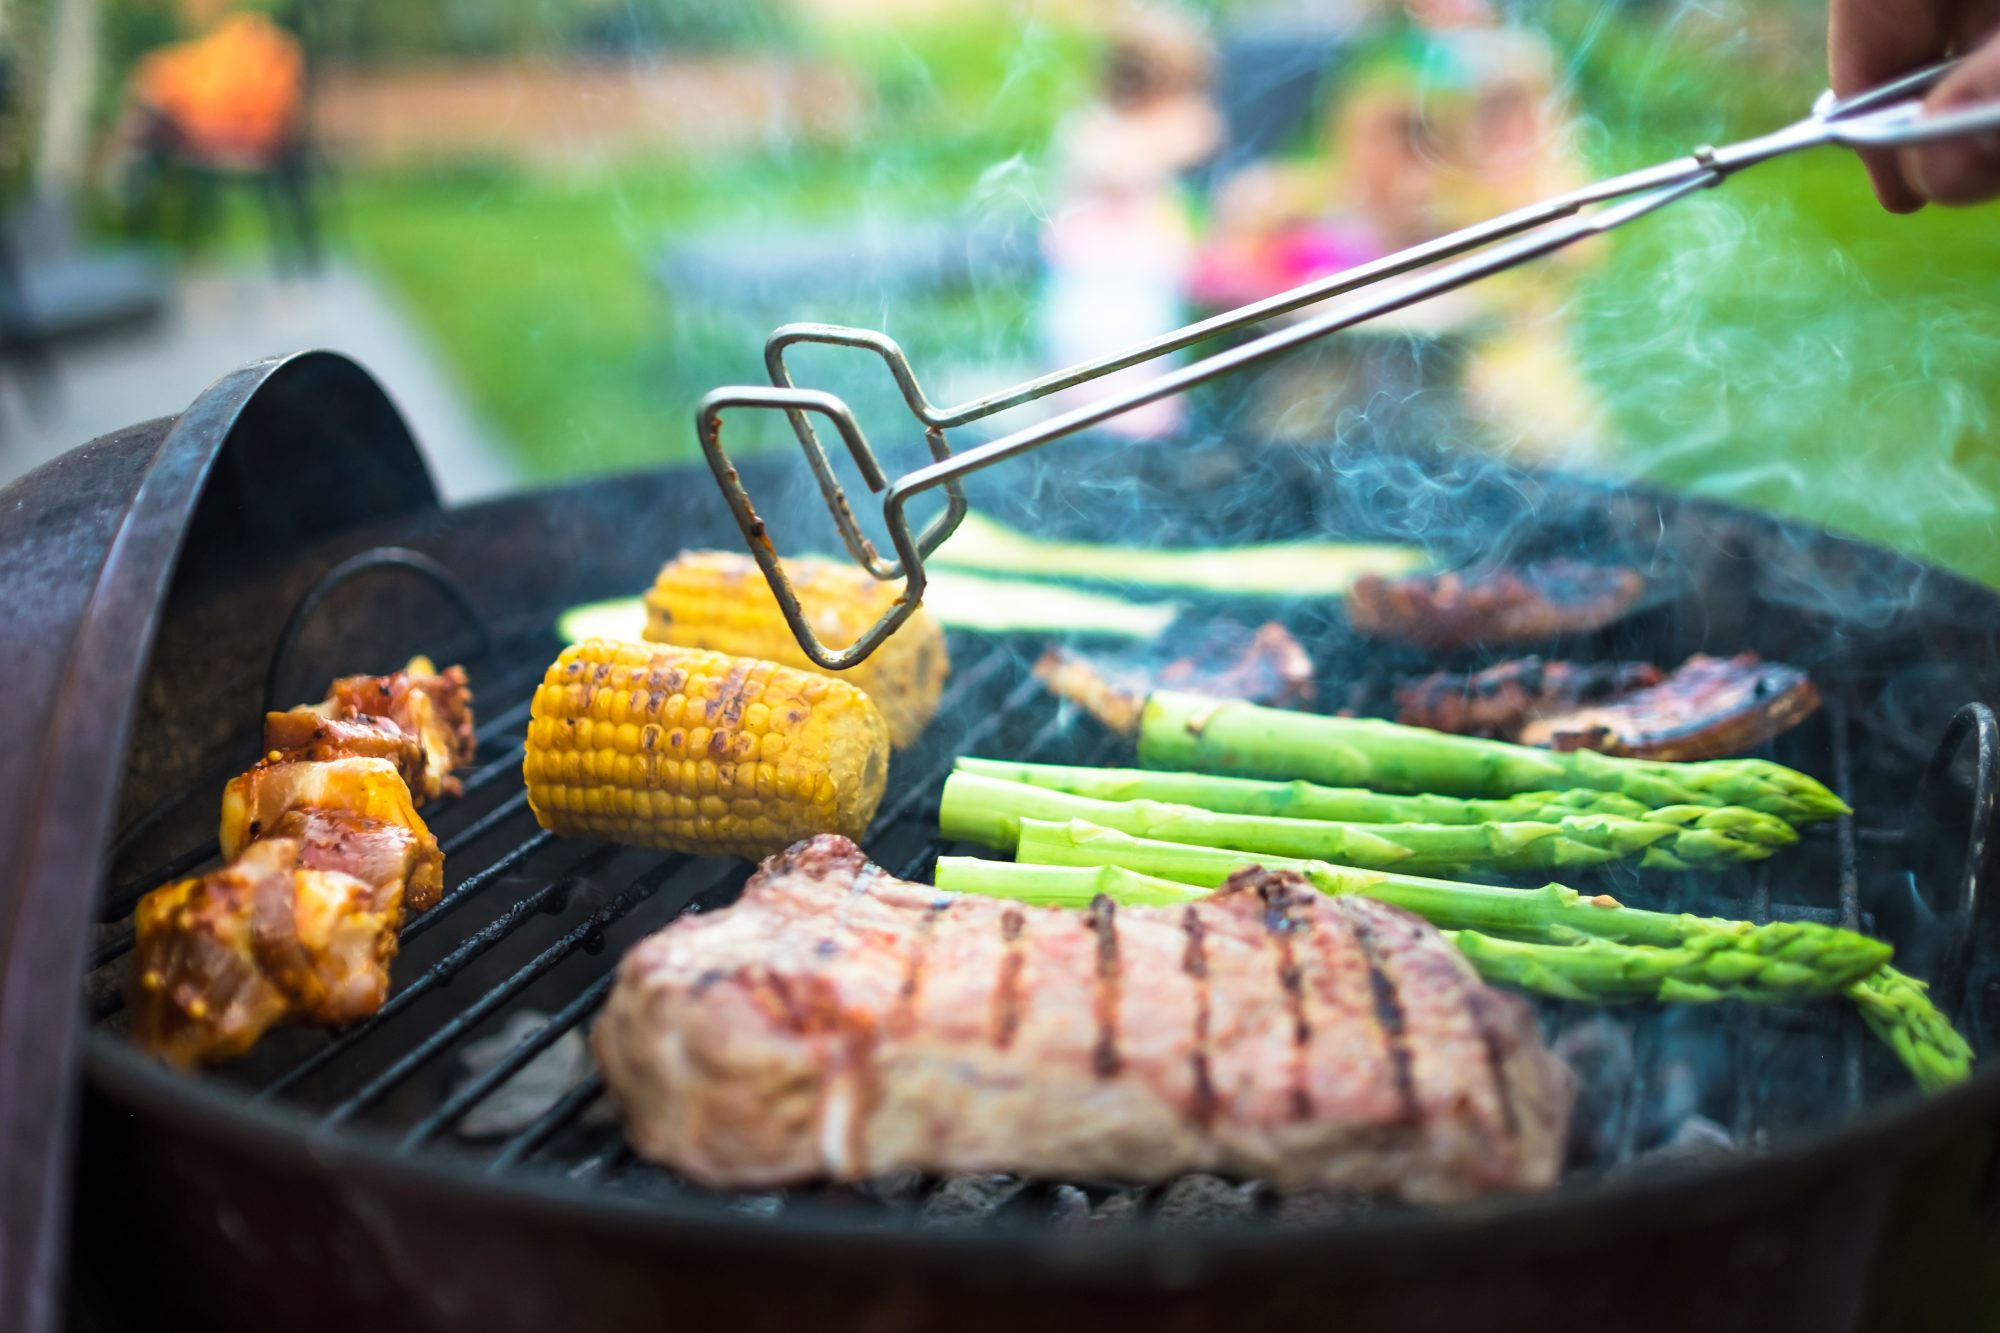 Plan a healthy barbecue